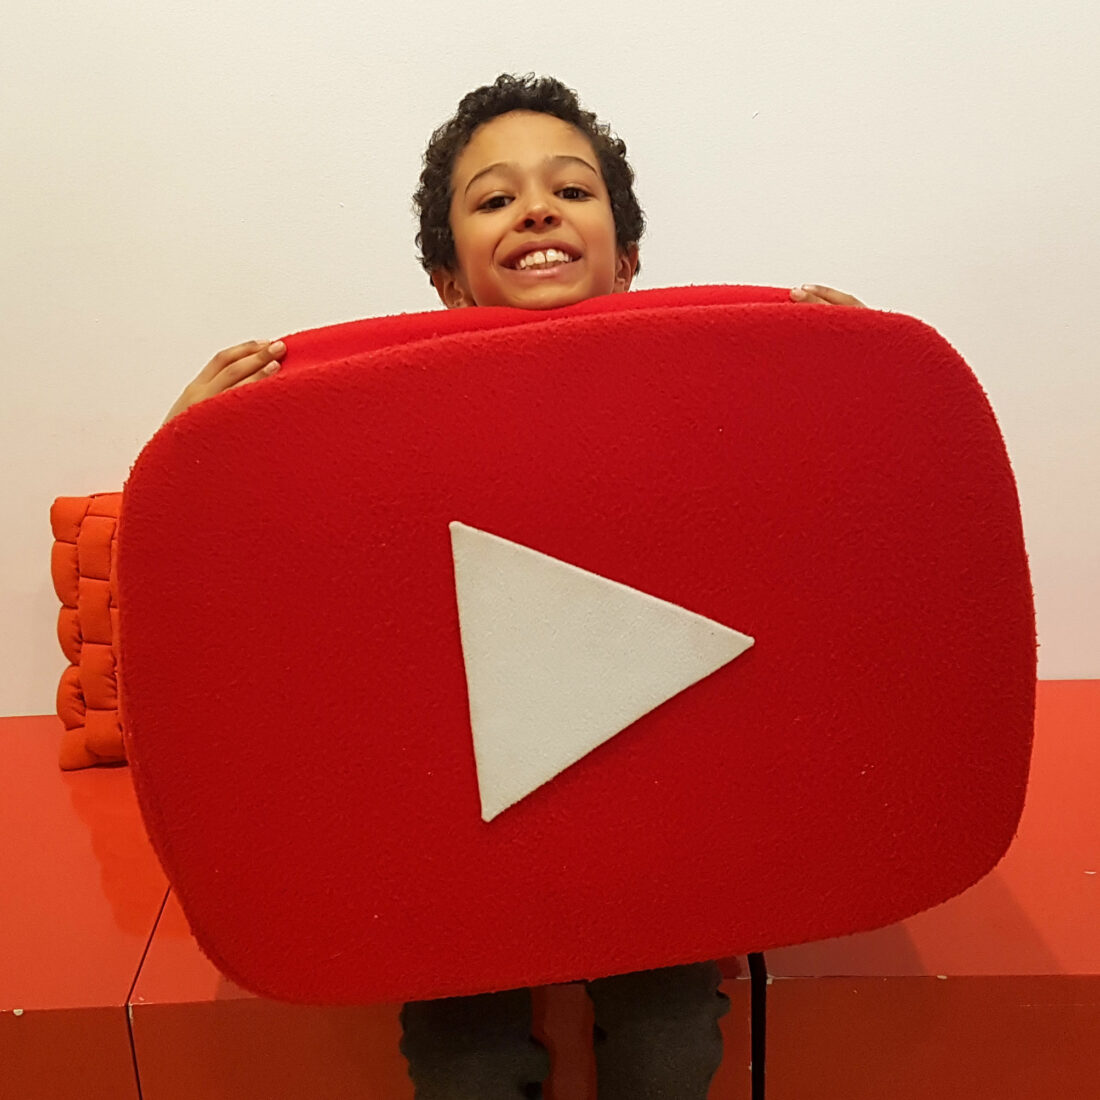 Sammy-YouTubeSpace